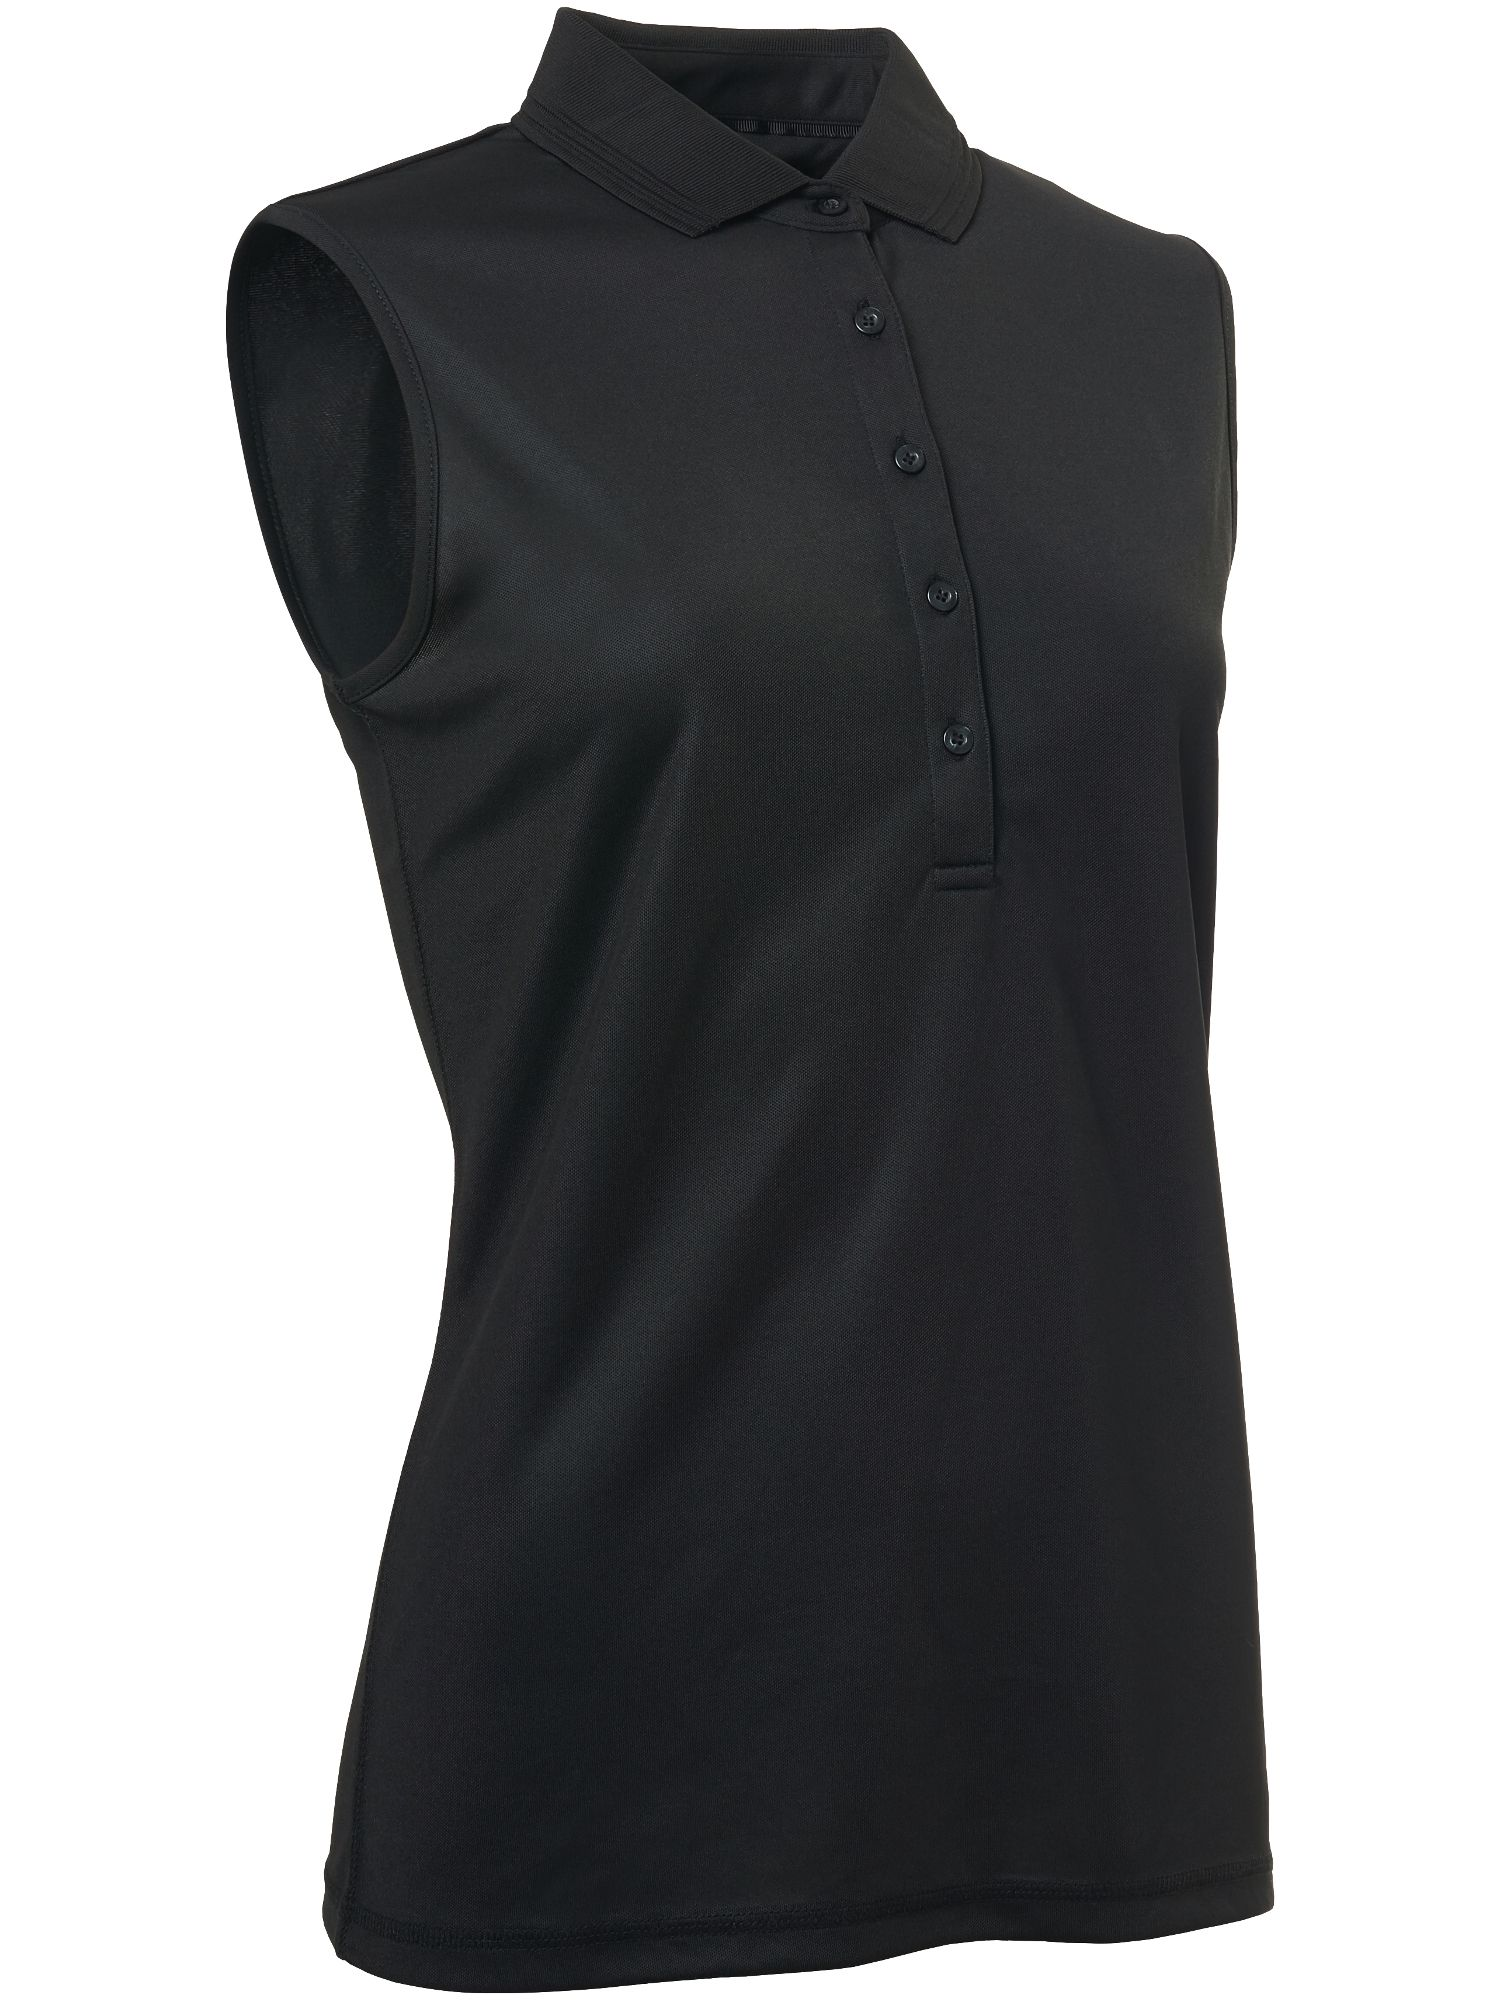 Abacus Clark Sleeveless Polo, Black